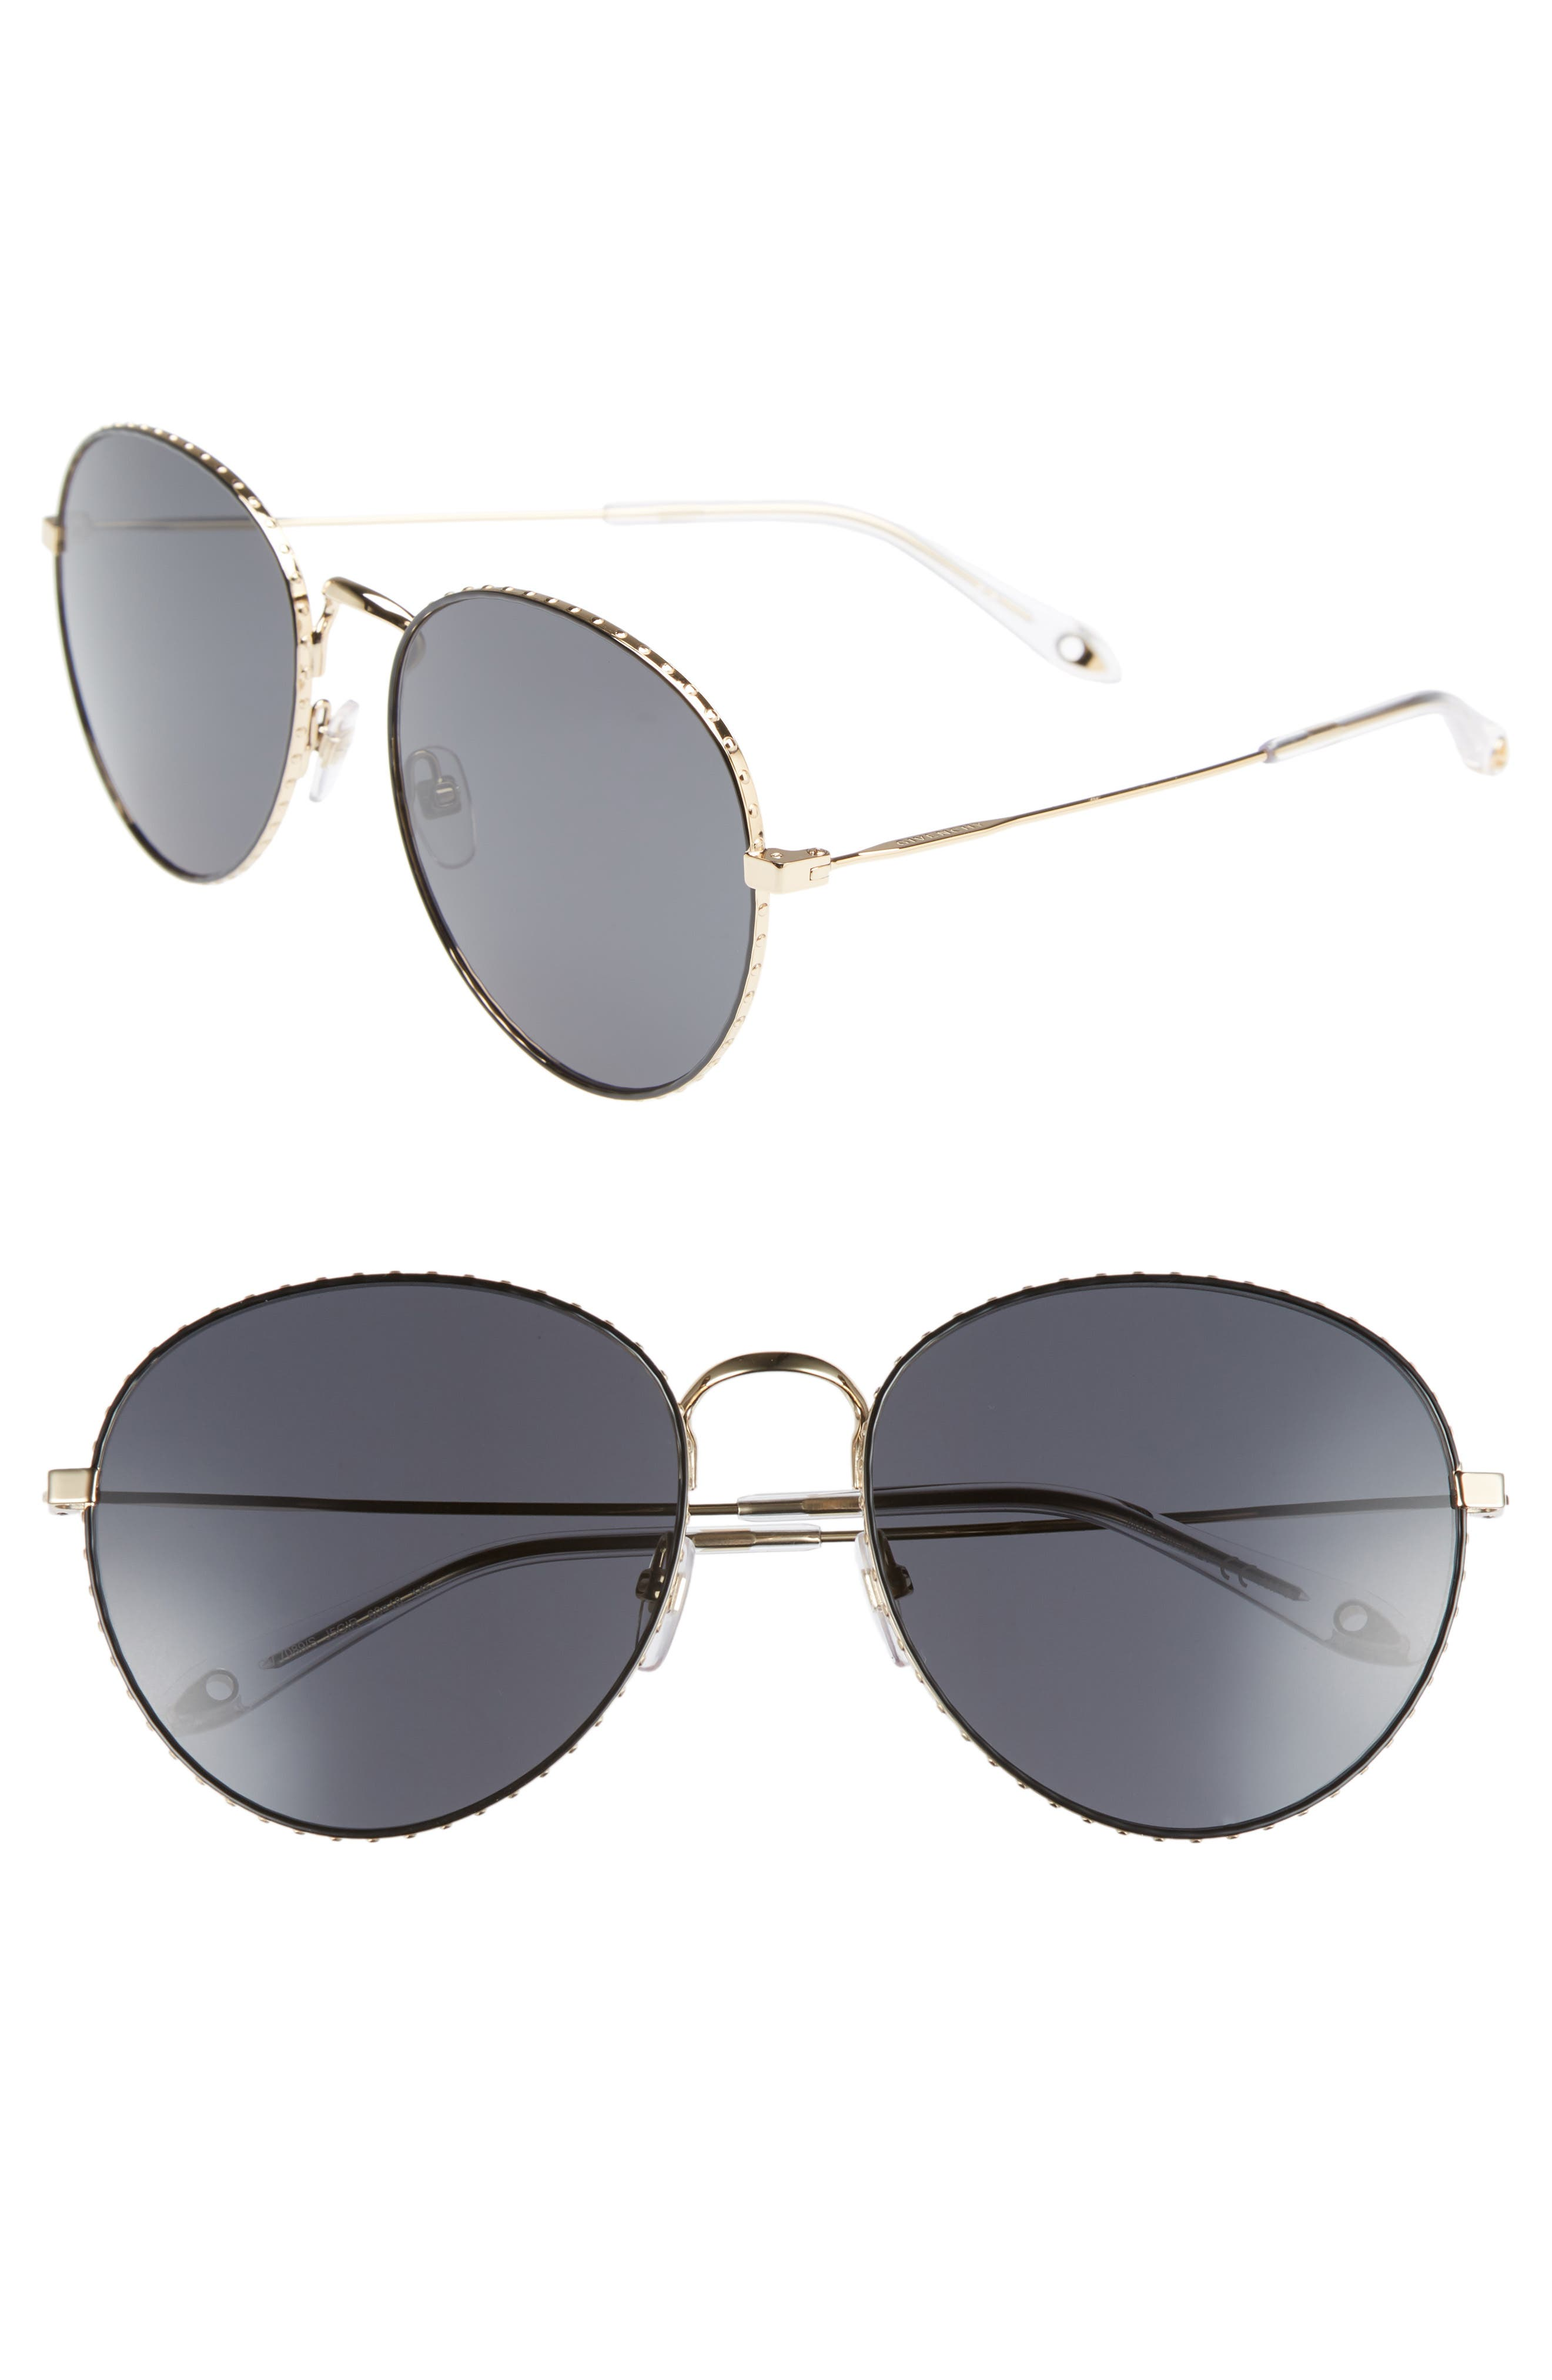 60mm Round Metal Sunglasses,                             Main thumbnail 1, color,                             GOLD